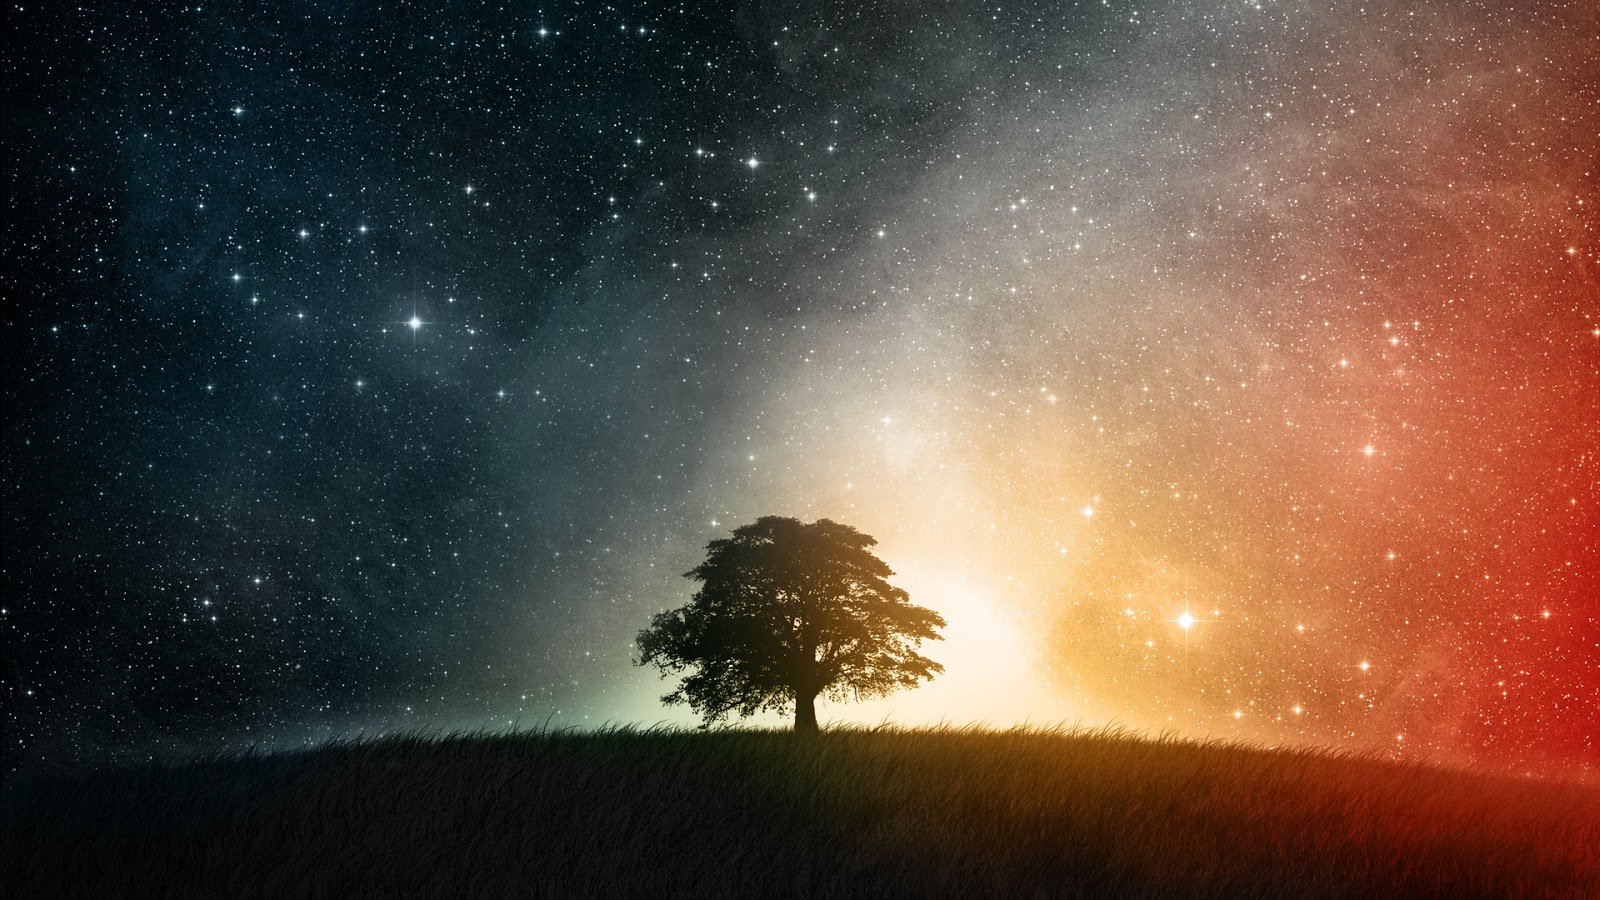 Galaxy HD Wallpapers Space Galaxy HD Wallpapers Check out the cool 1600x900